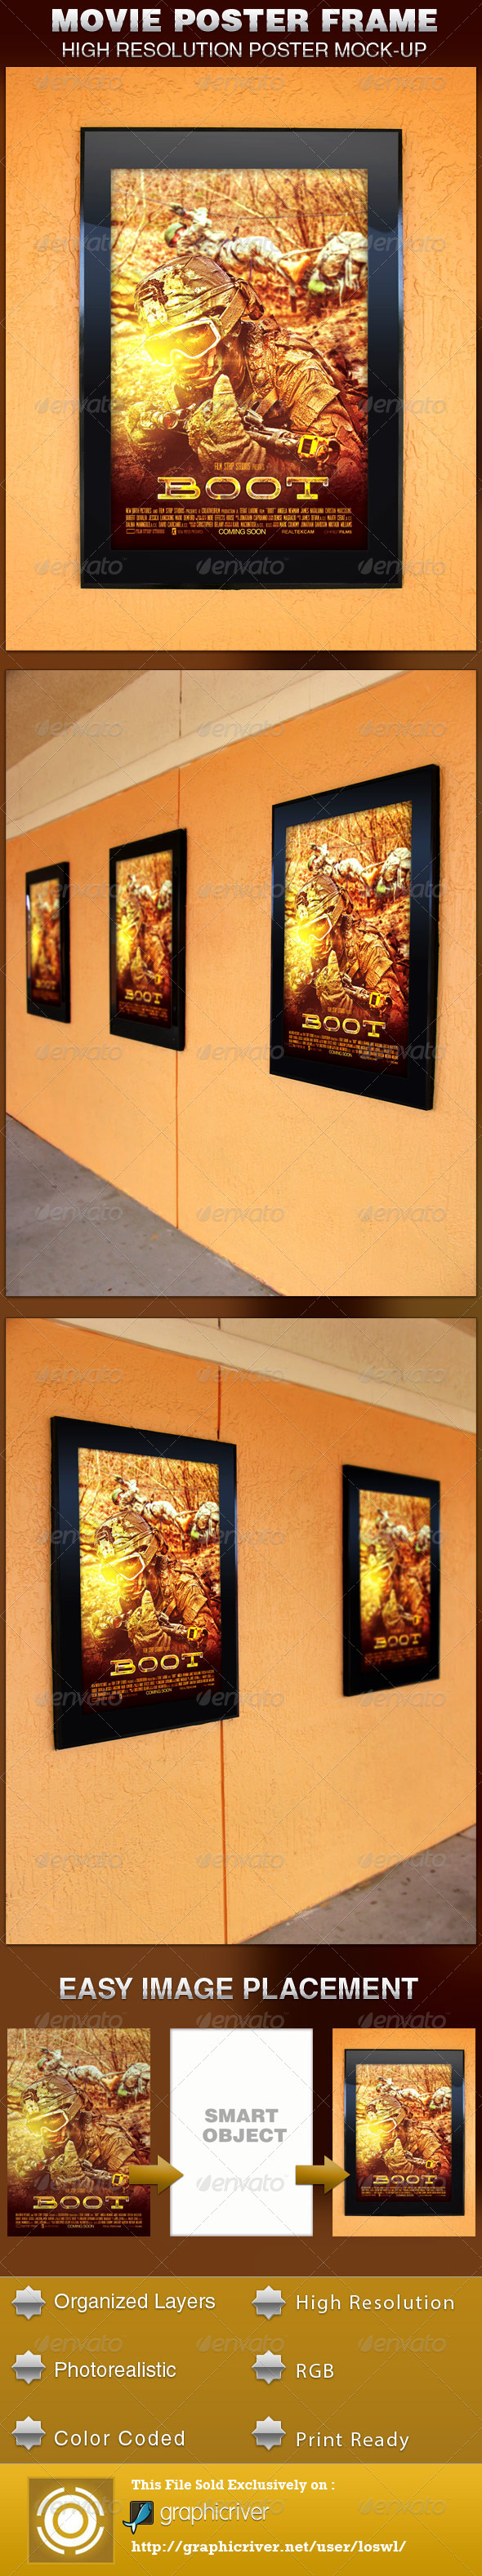 Movie Poster Frame Mockup Template - Posters Print